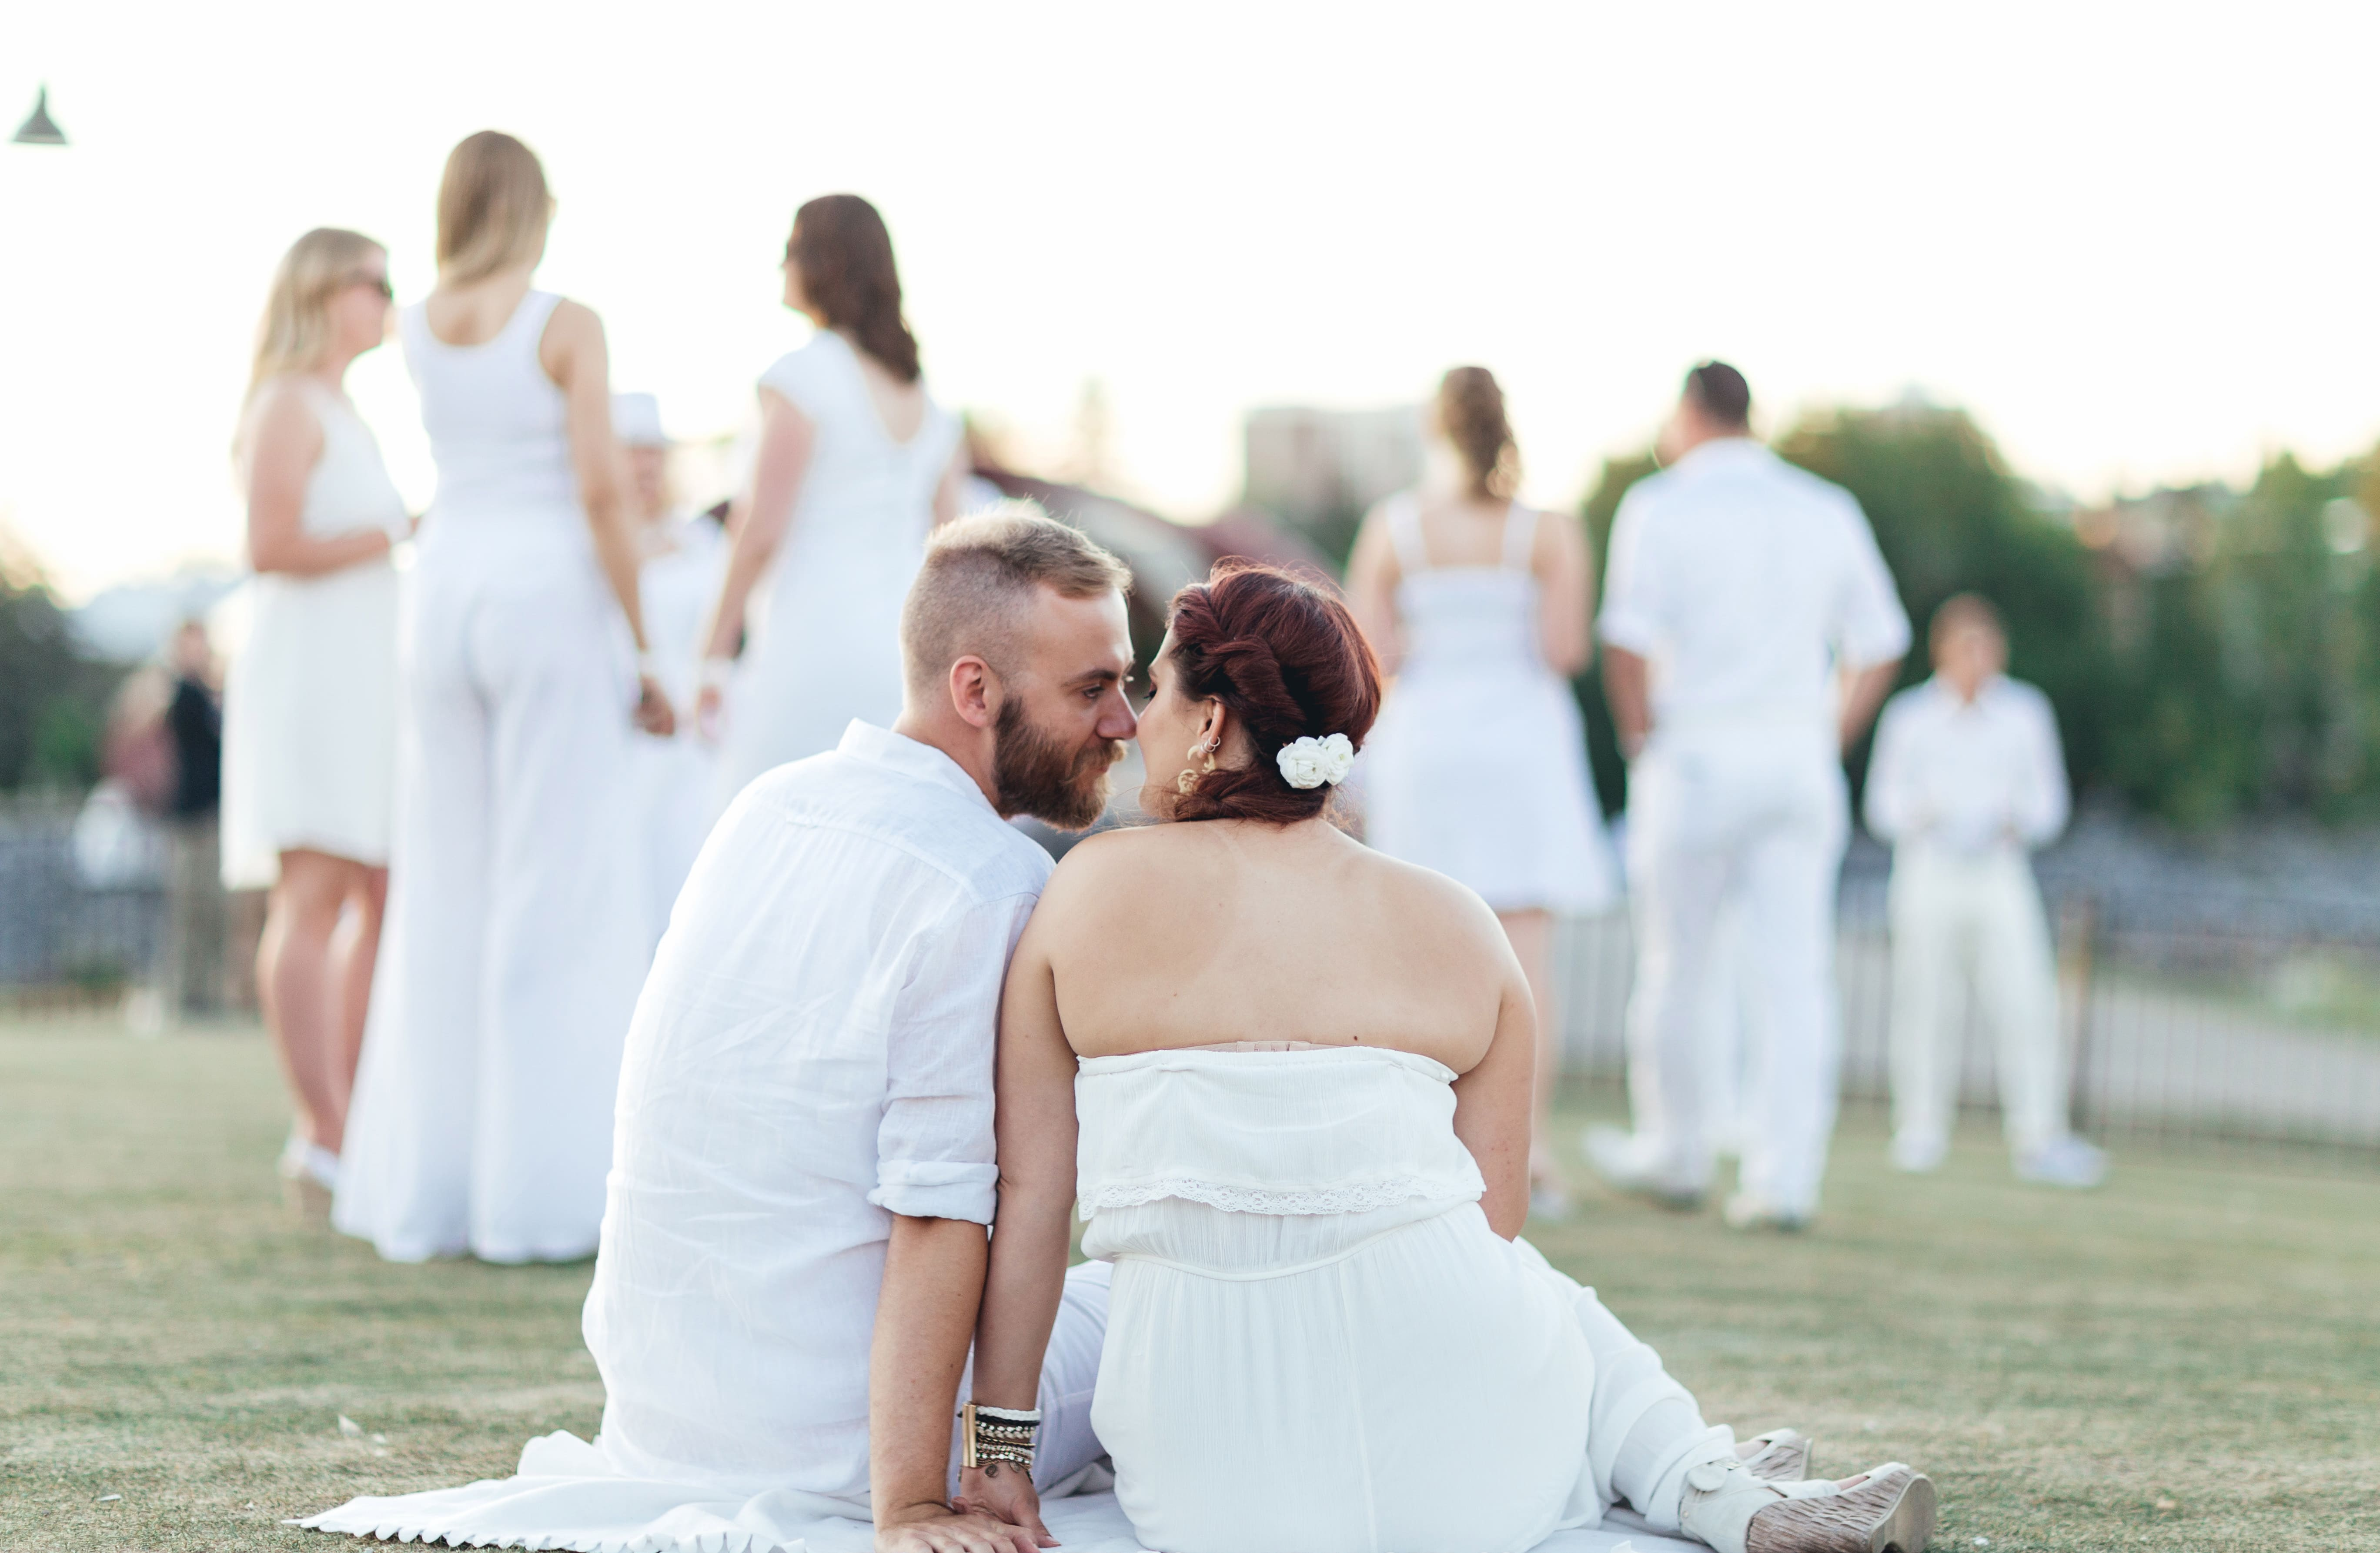 Diner en Blanc 2015 Calgary photo Kelly Hofer 6914 min